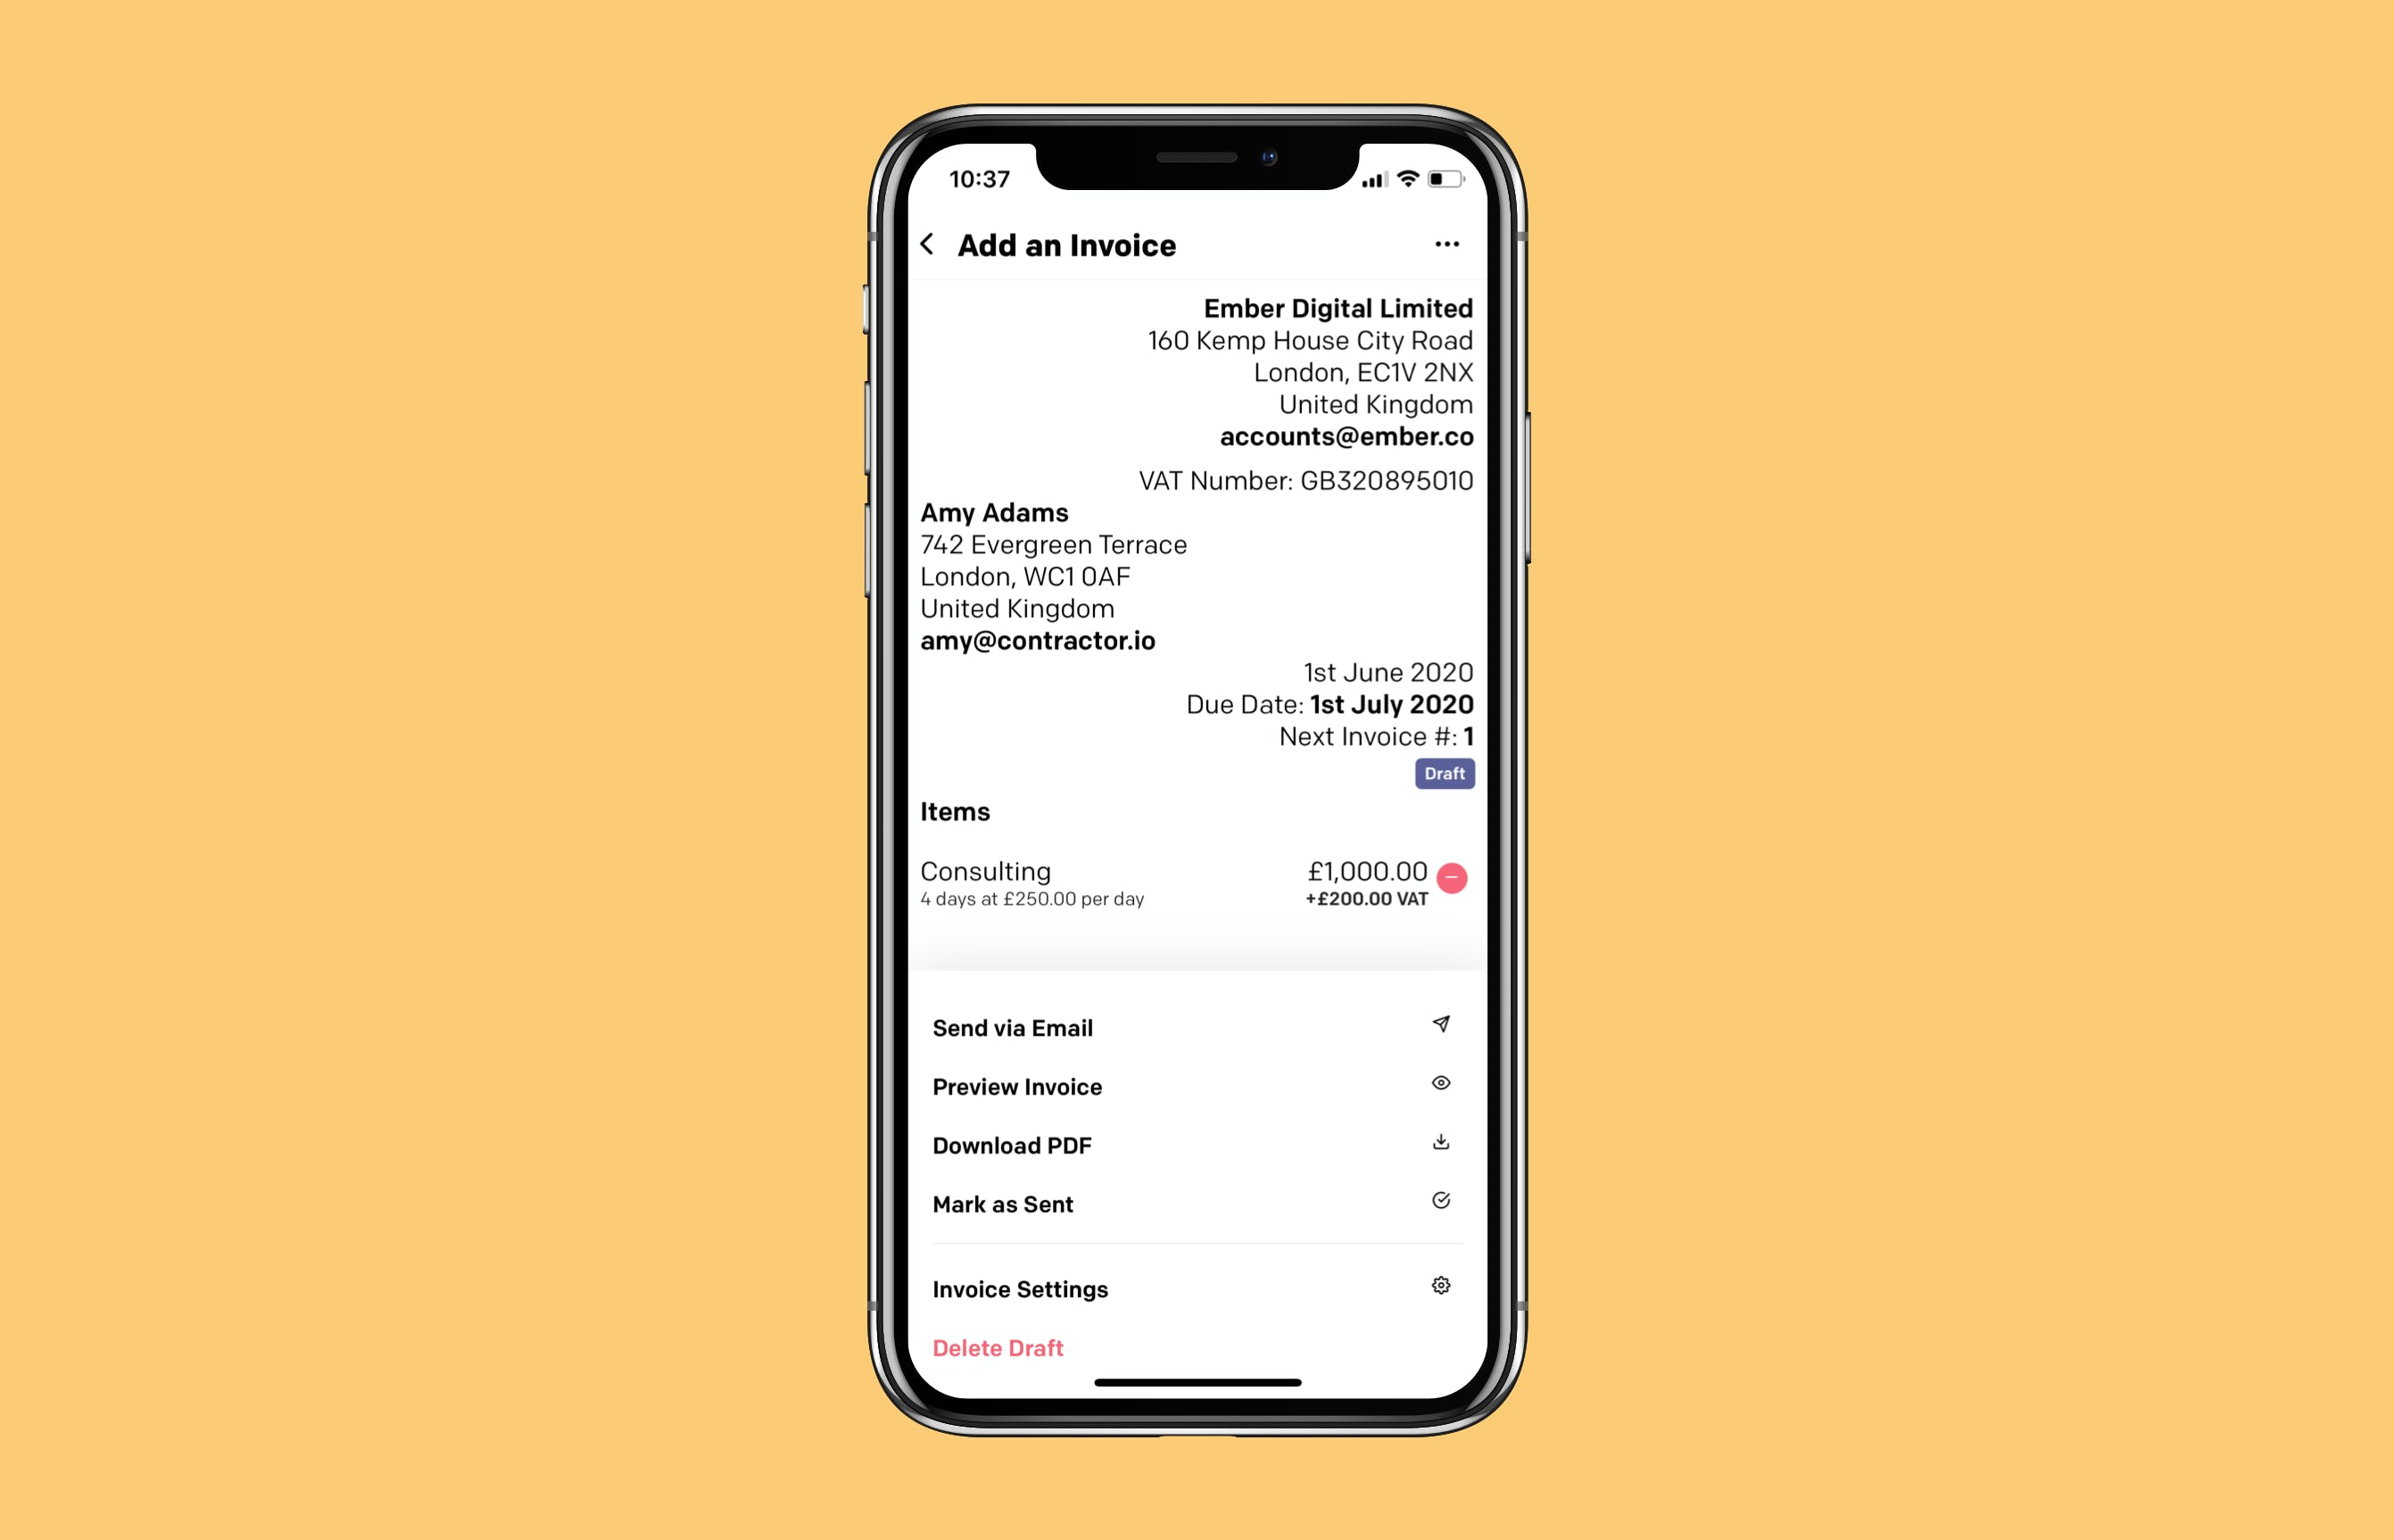 Invoicing screens on iOS device